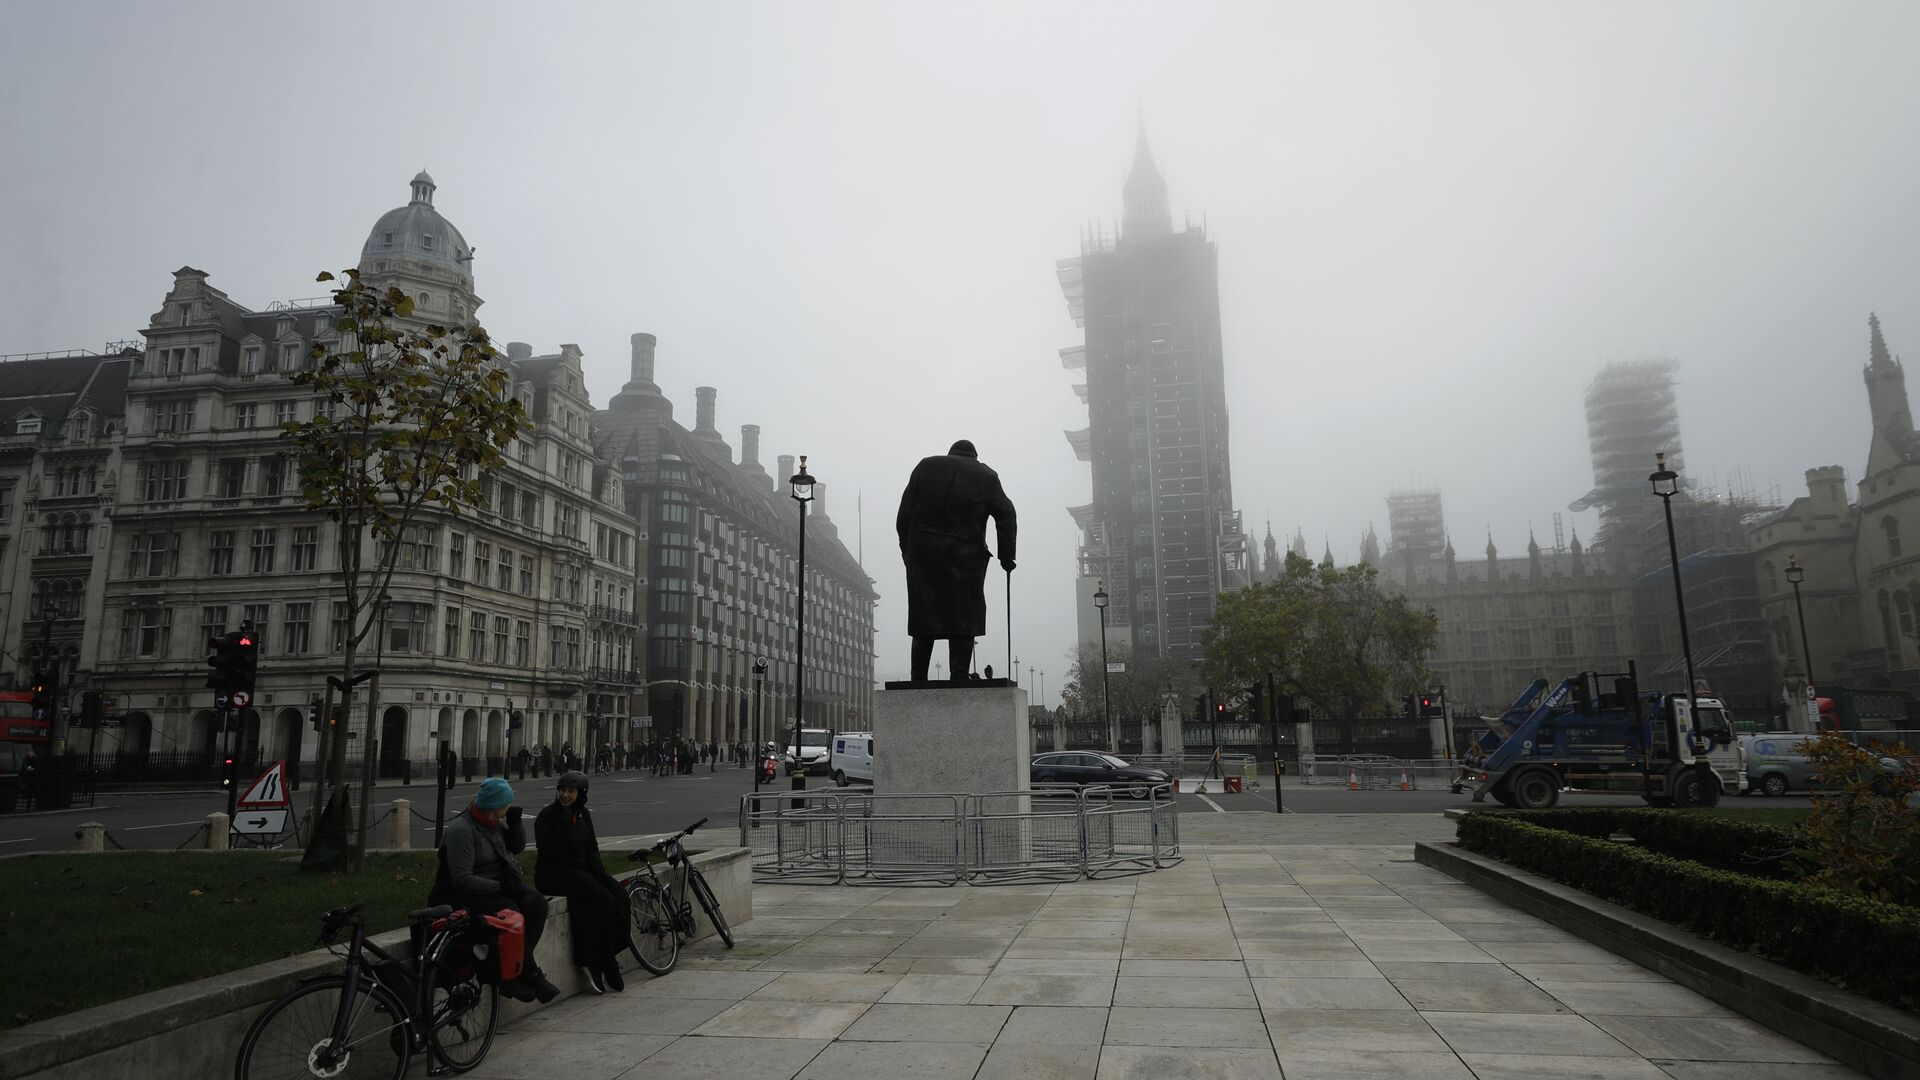 People sit talking near the statue of Winston Churchill and the scaffolded Houses of Parliament and the Elizabeth Tower, known as Big Ben, shrouded in fog, on the first day of Britain's second lockdown designed to save its health care system from being overwhelmed by people with coronavirus, in London, Thursday, Nov. 5, 2020 - Sputnik International, 1920, 13.10.2021